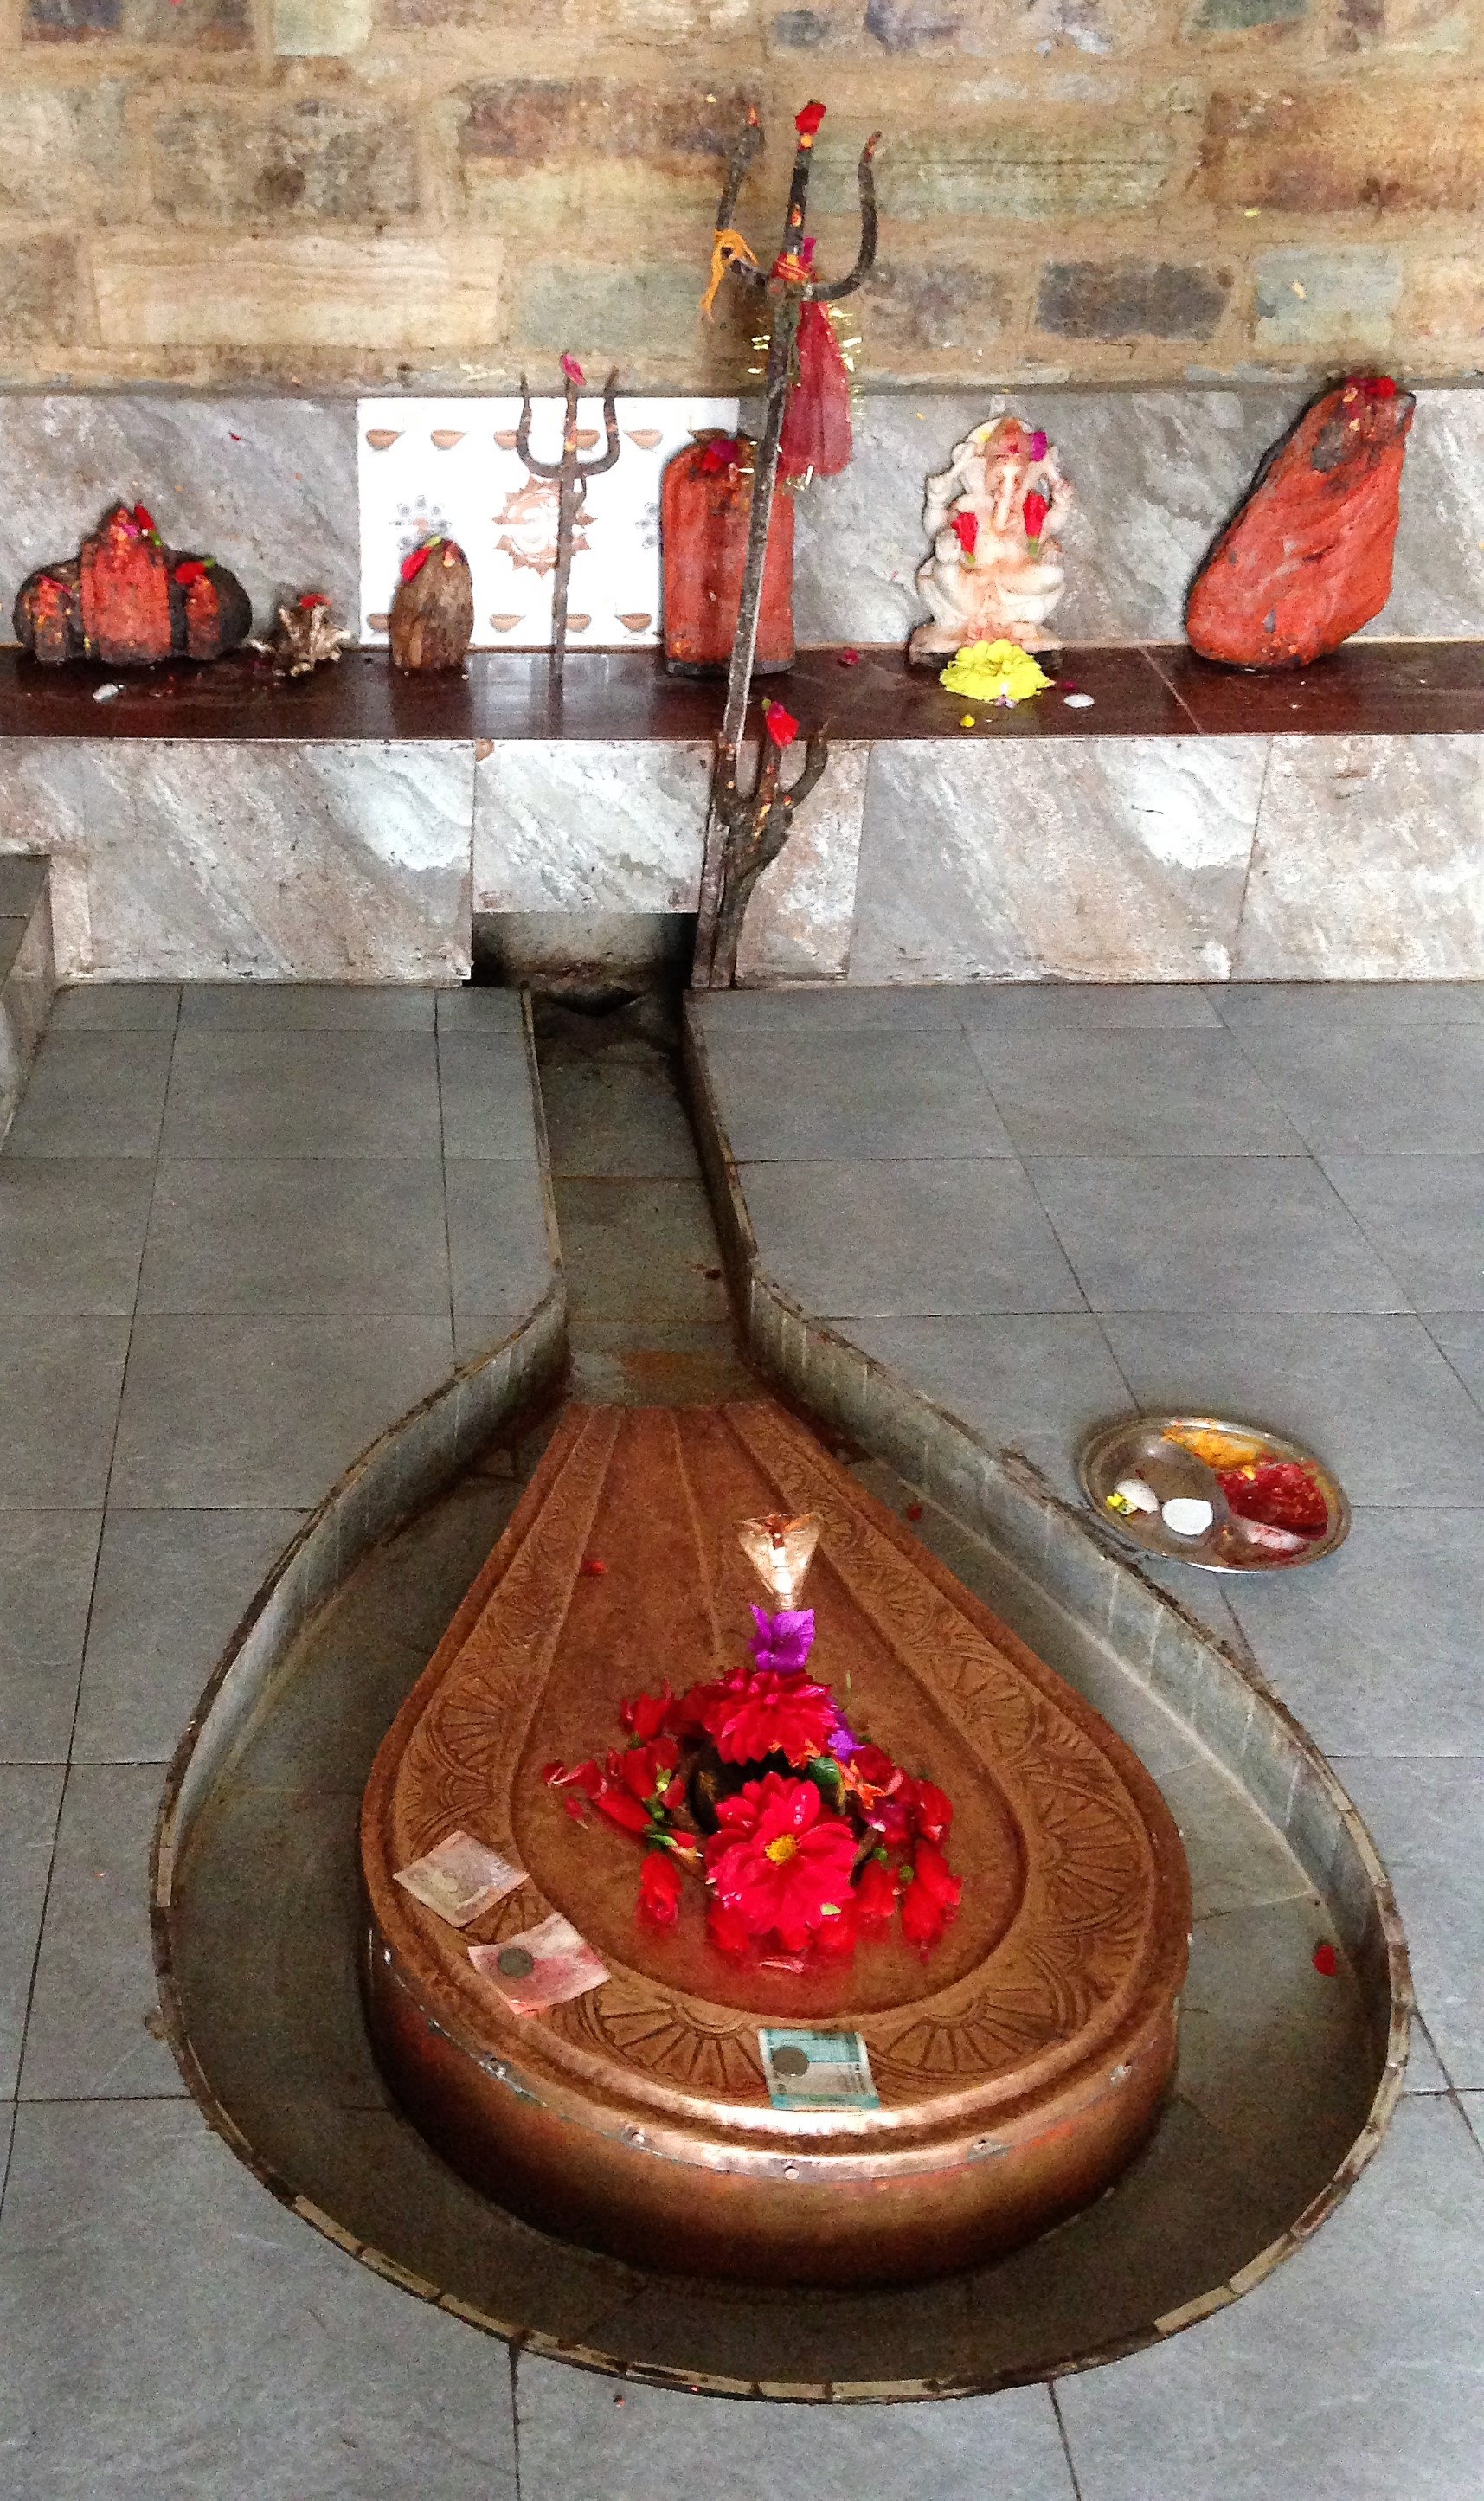 A typical lingam and yoni arrangement for worship of Shiva